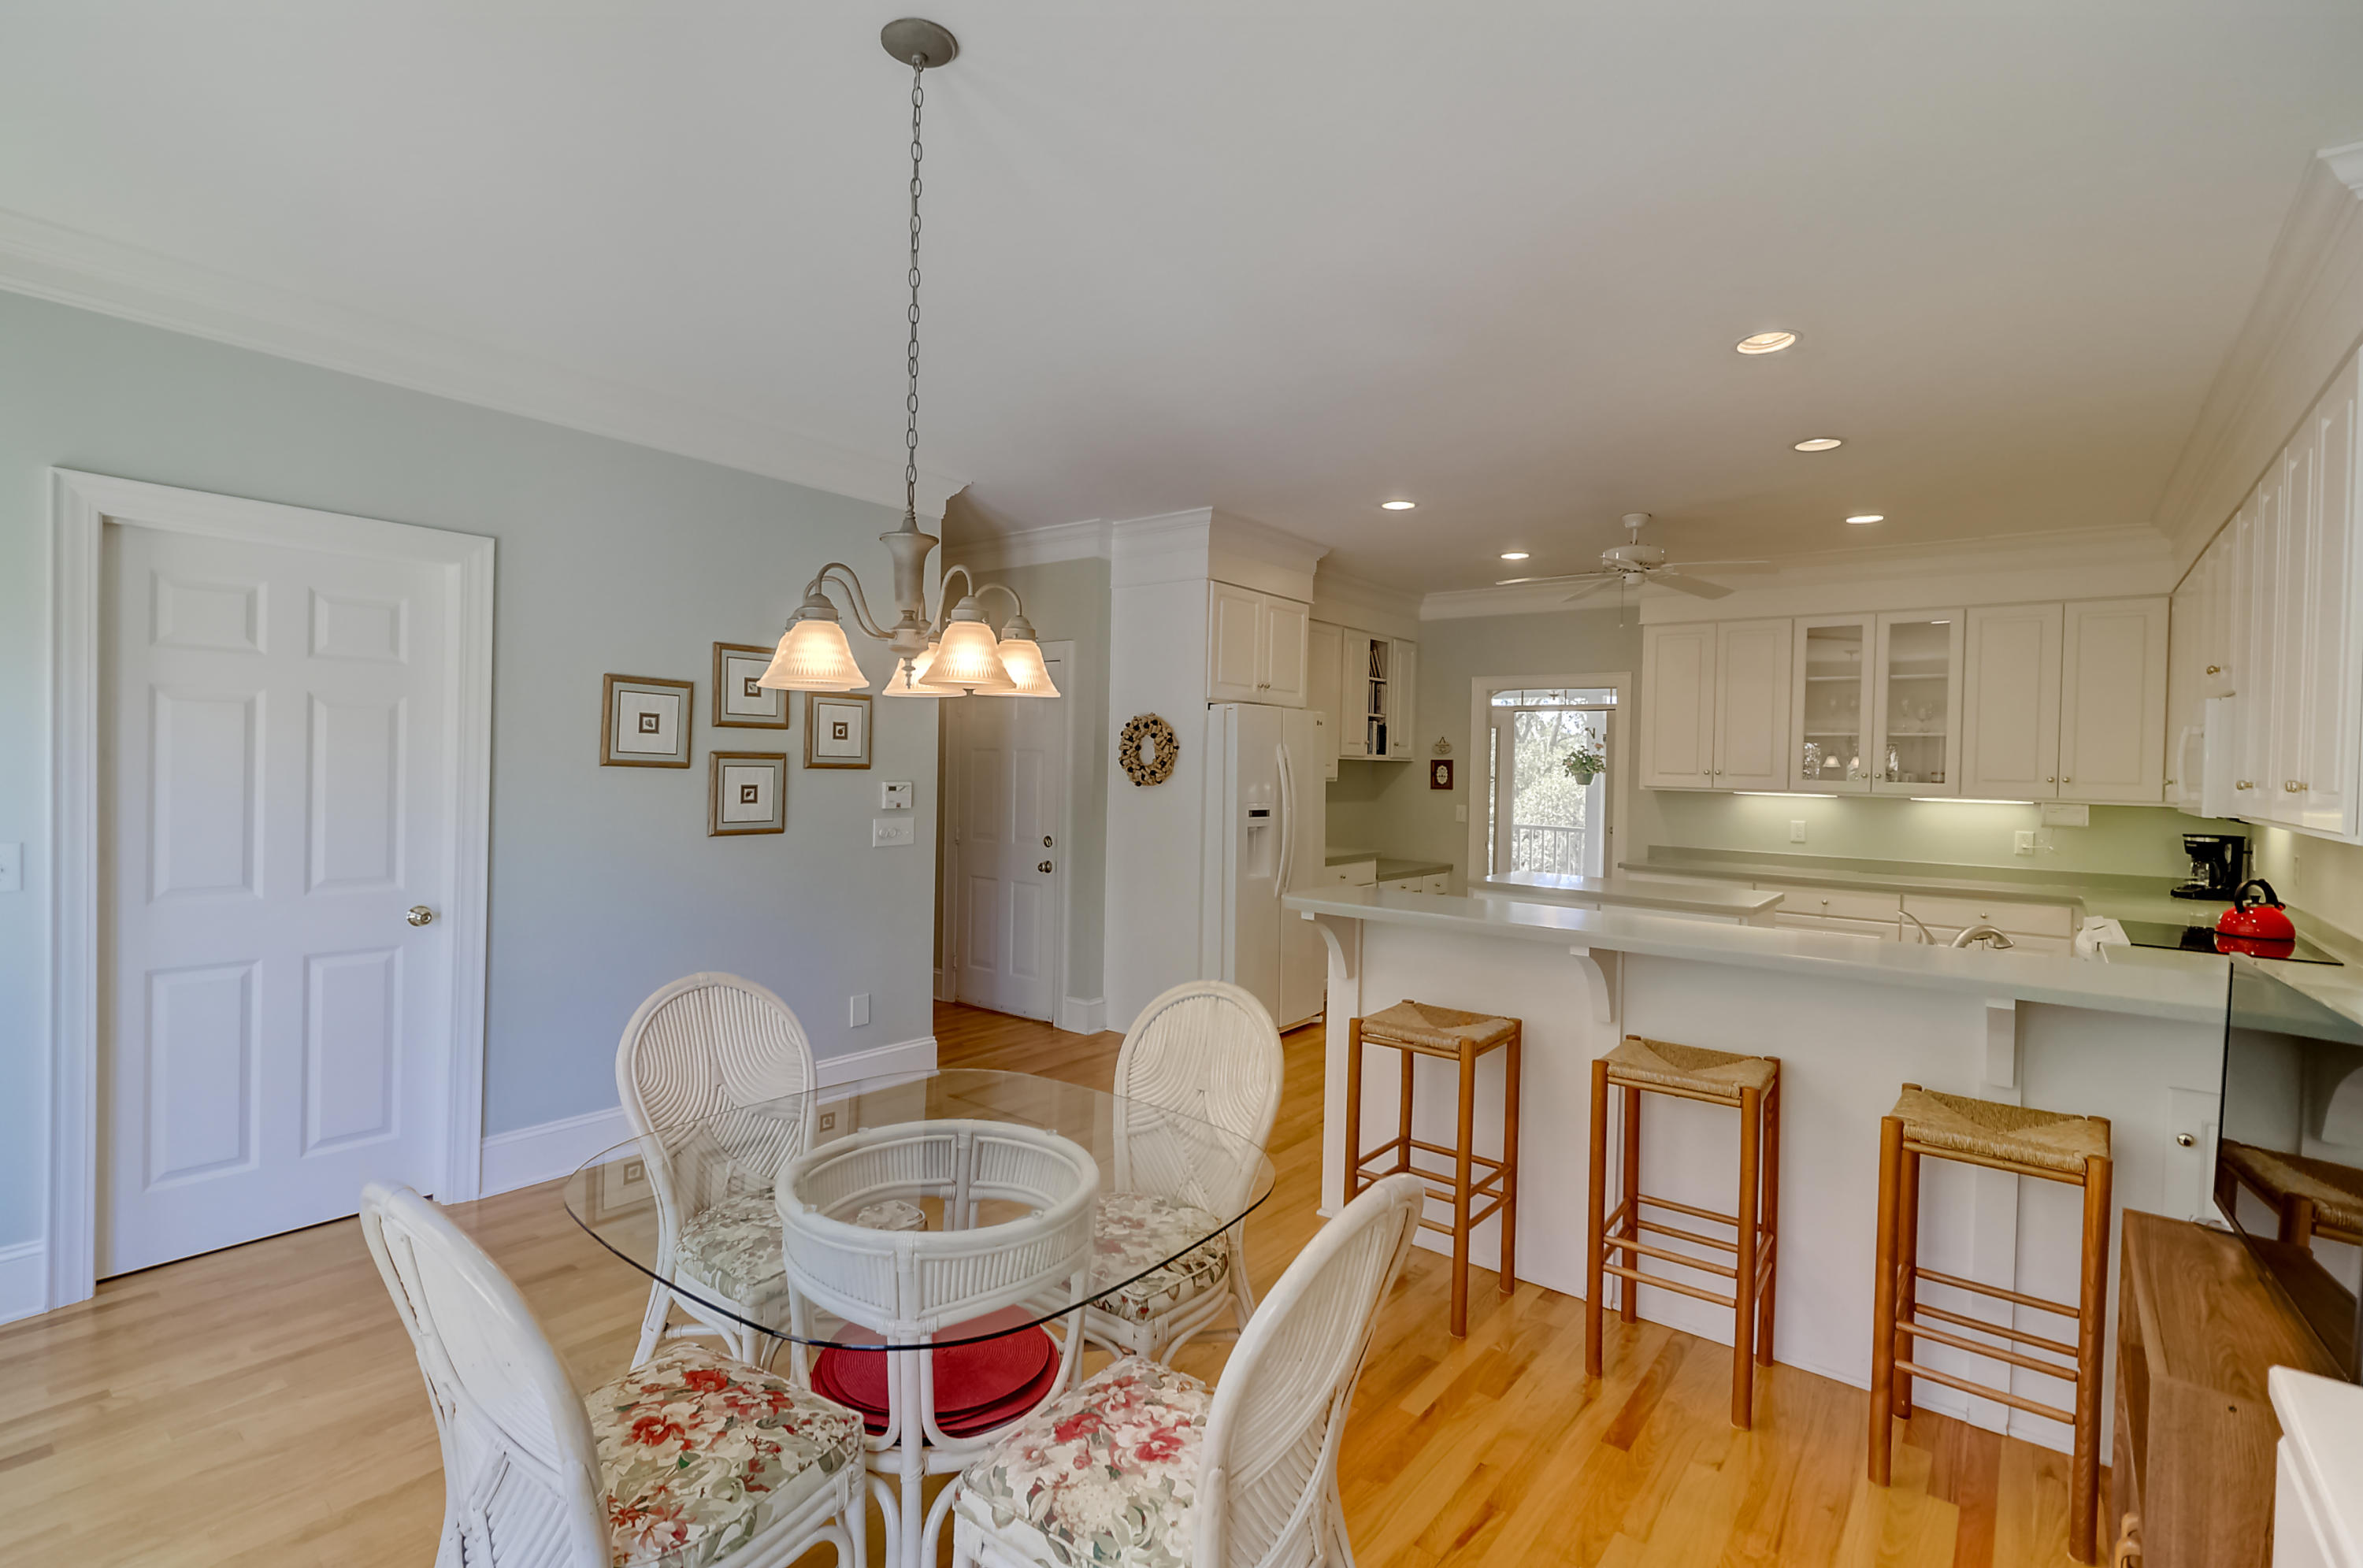 Stratton Place Homes For Sale - 1494 Stratton, Mount Pleasant, SC - 52